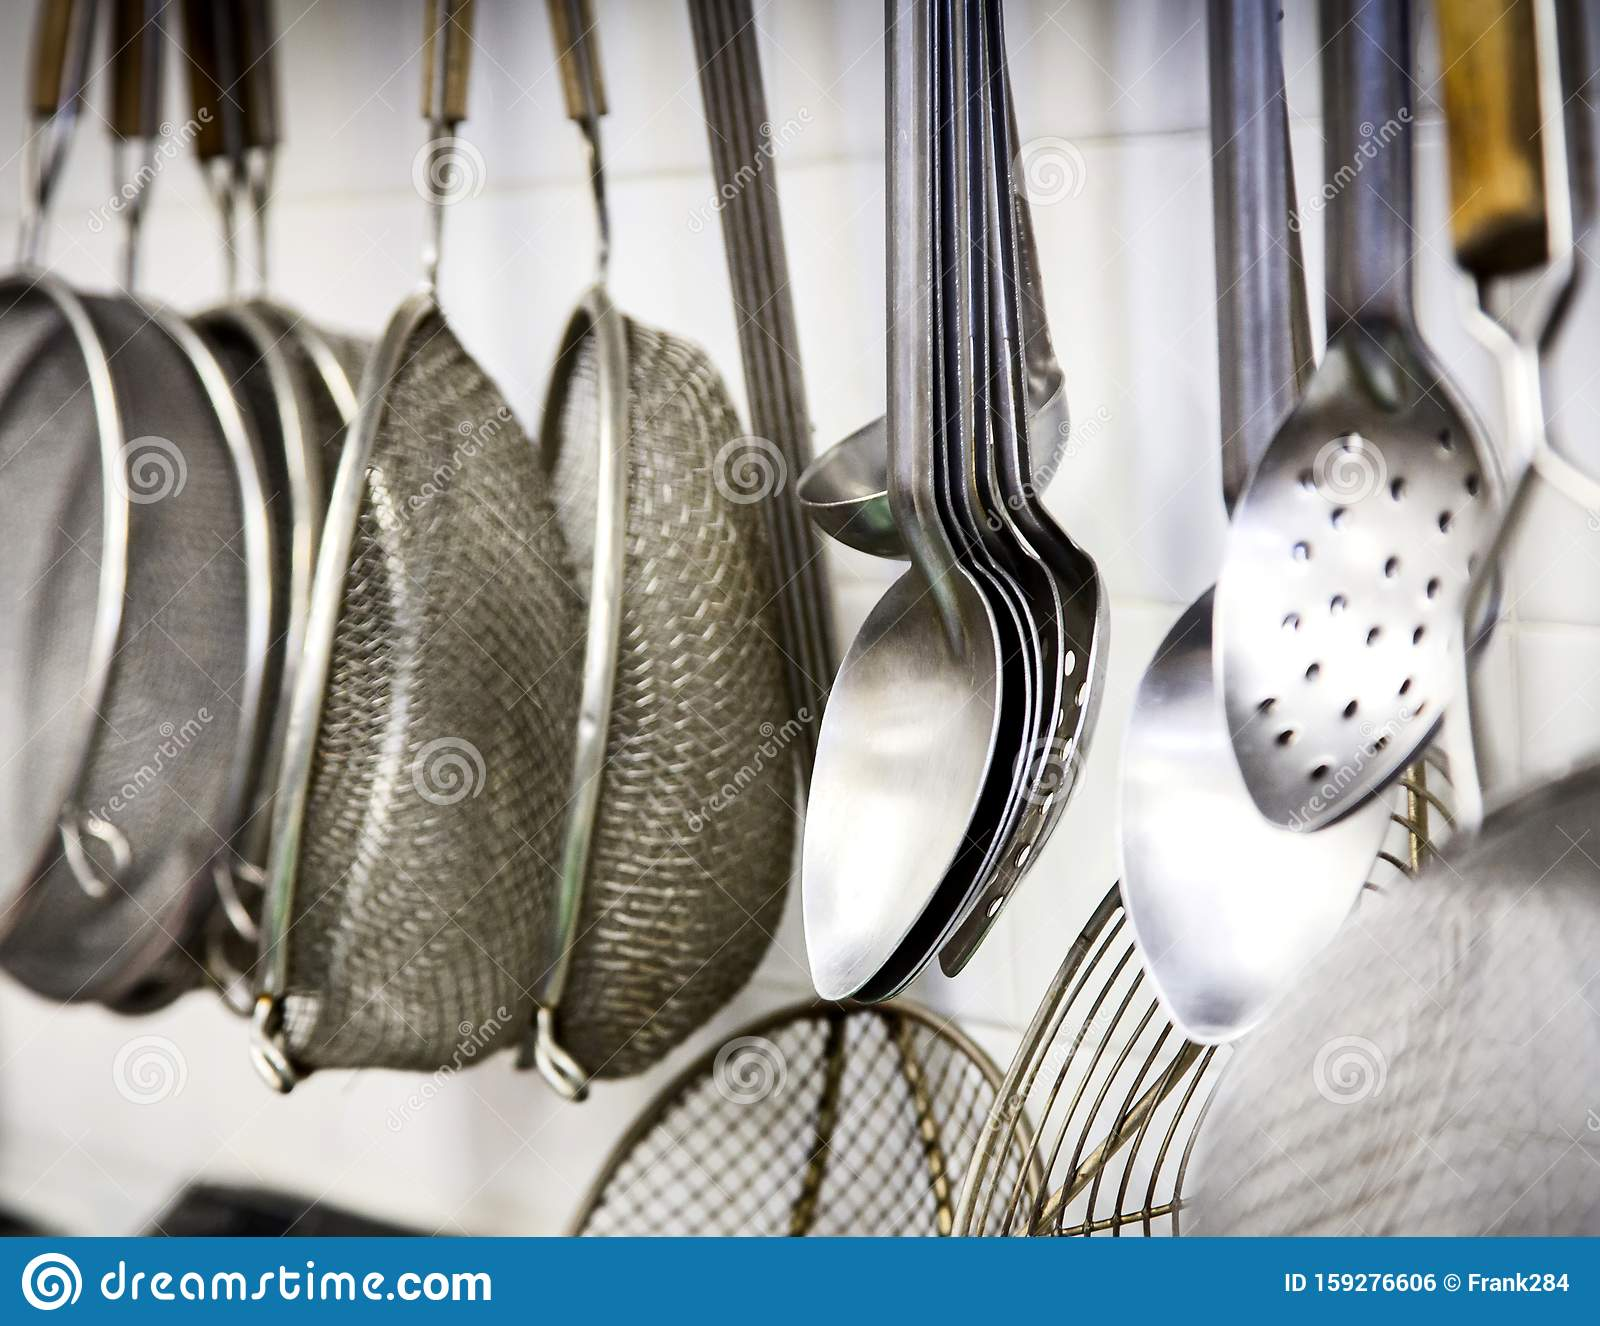 Commercial Kitchen Utensils Hanging On A White Wall Stock Photo Image Of Wall Hanging 159276606